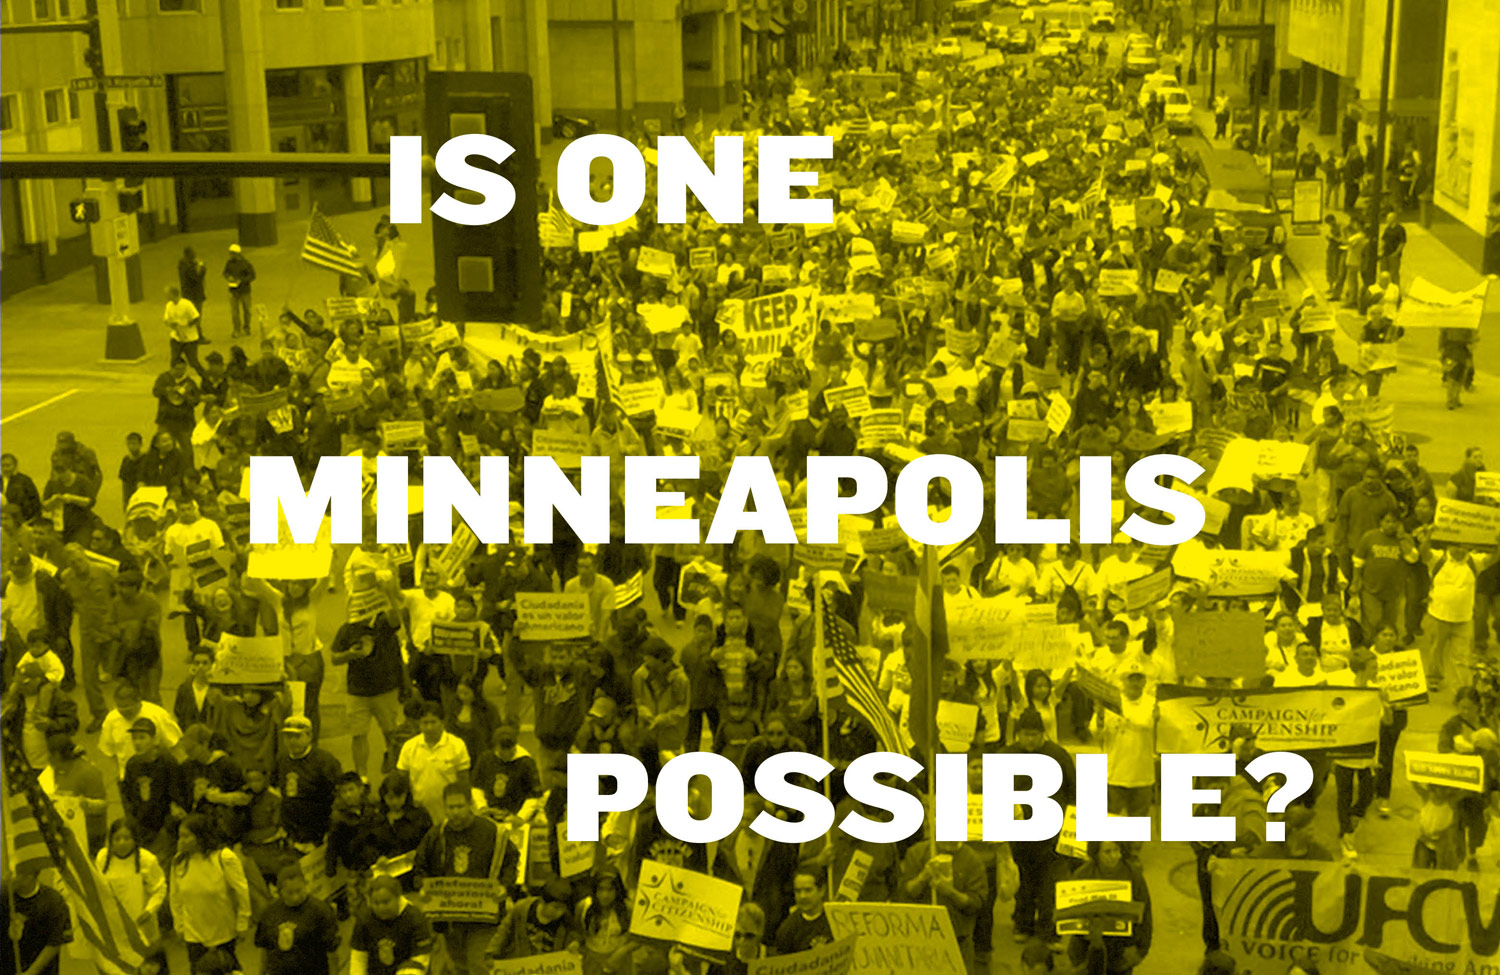 Minneapolis-Has-Long-Been-Fractured-by-Racial-Inequity.-Can-a-New-Mayor-Change-That